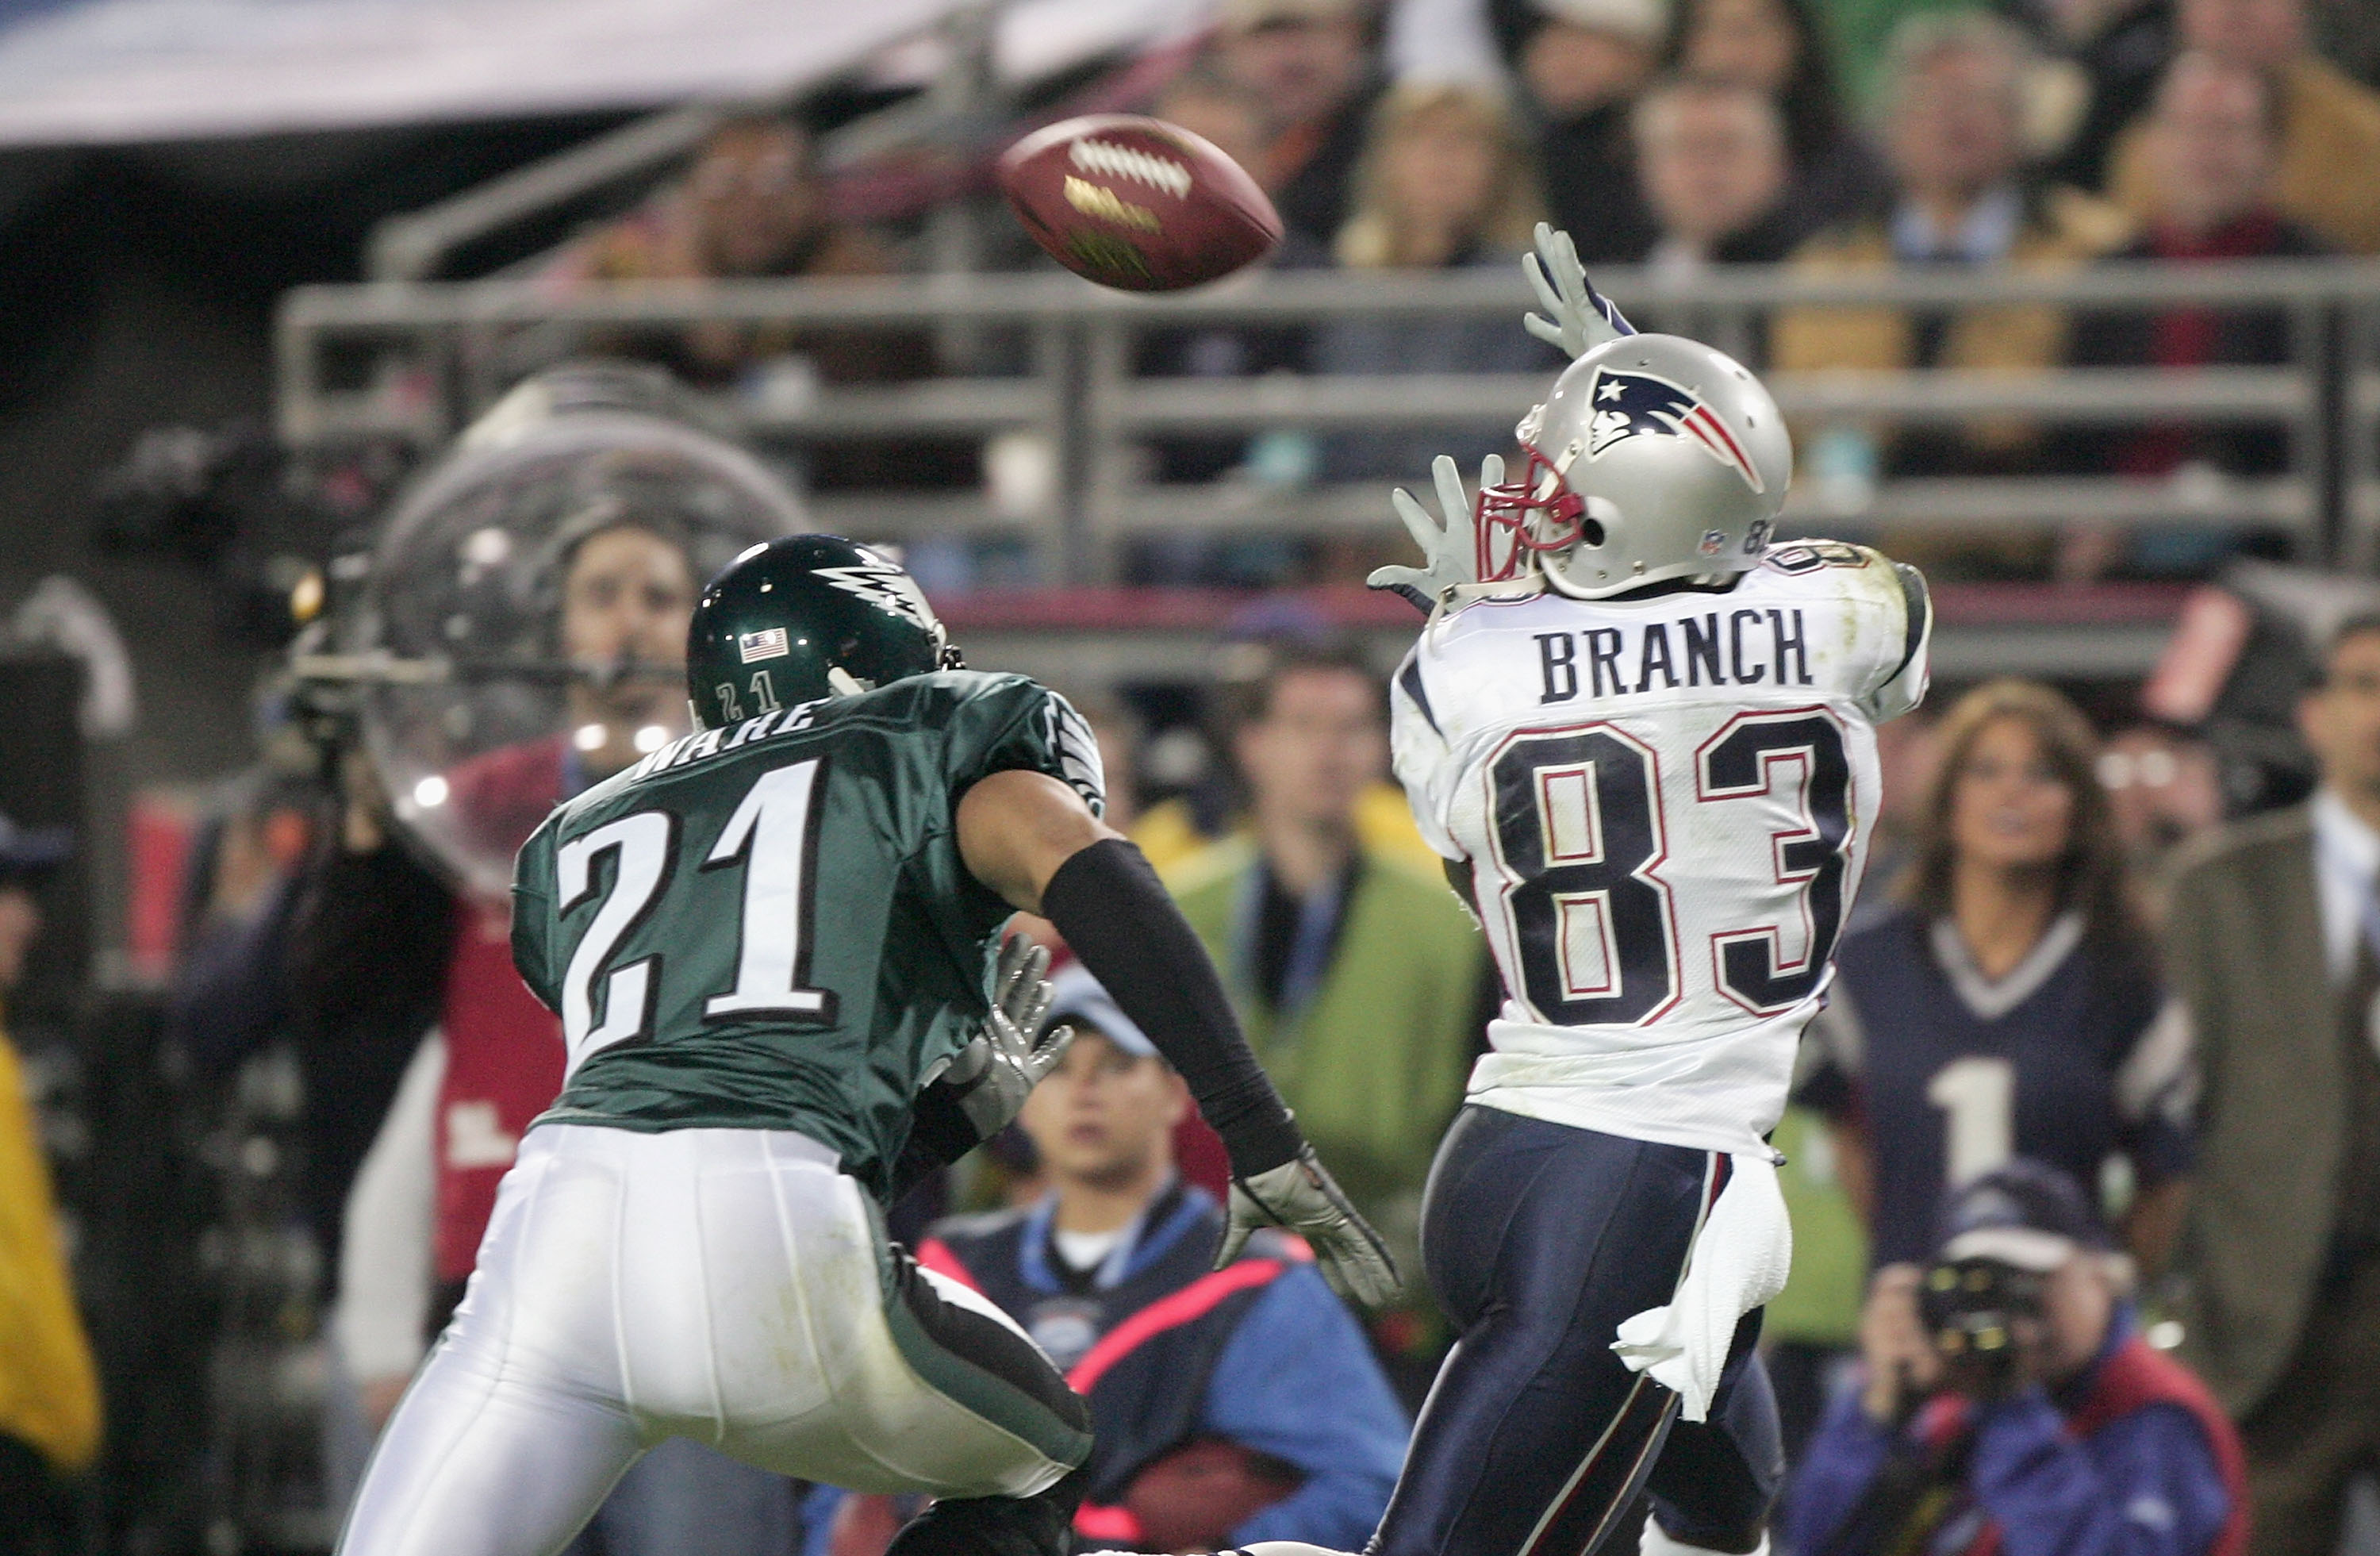 JACKSONVILLE, FL - FEBRUARY 6:  Wide receiver Deion Branch #83 of the New England Patriots receives a pass over Matt Ware #21 of the Philadelphia Eagles during Super Bowl XXXIX at Alltel Stadium on February 6, 2005 in Jacksonville, Florida. The Patriots d